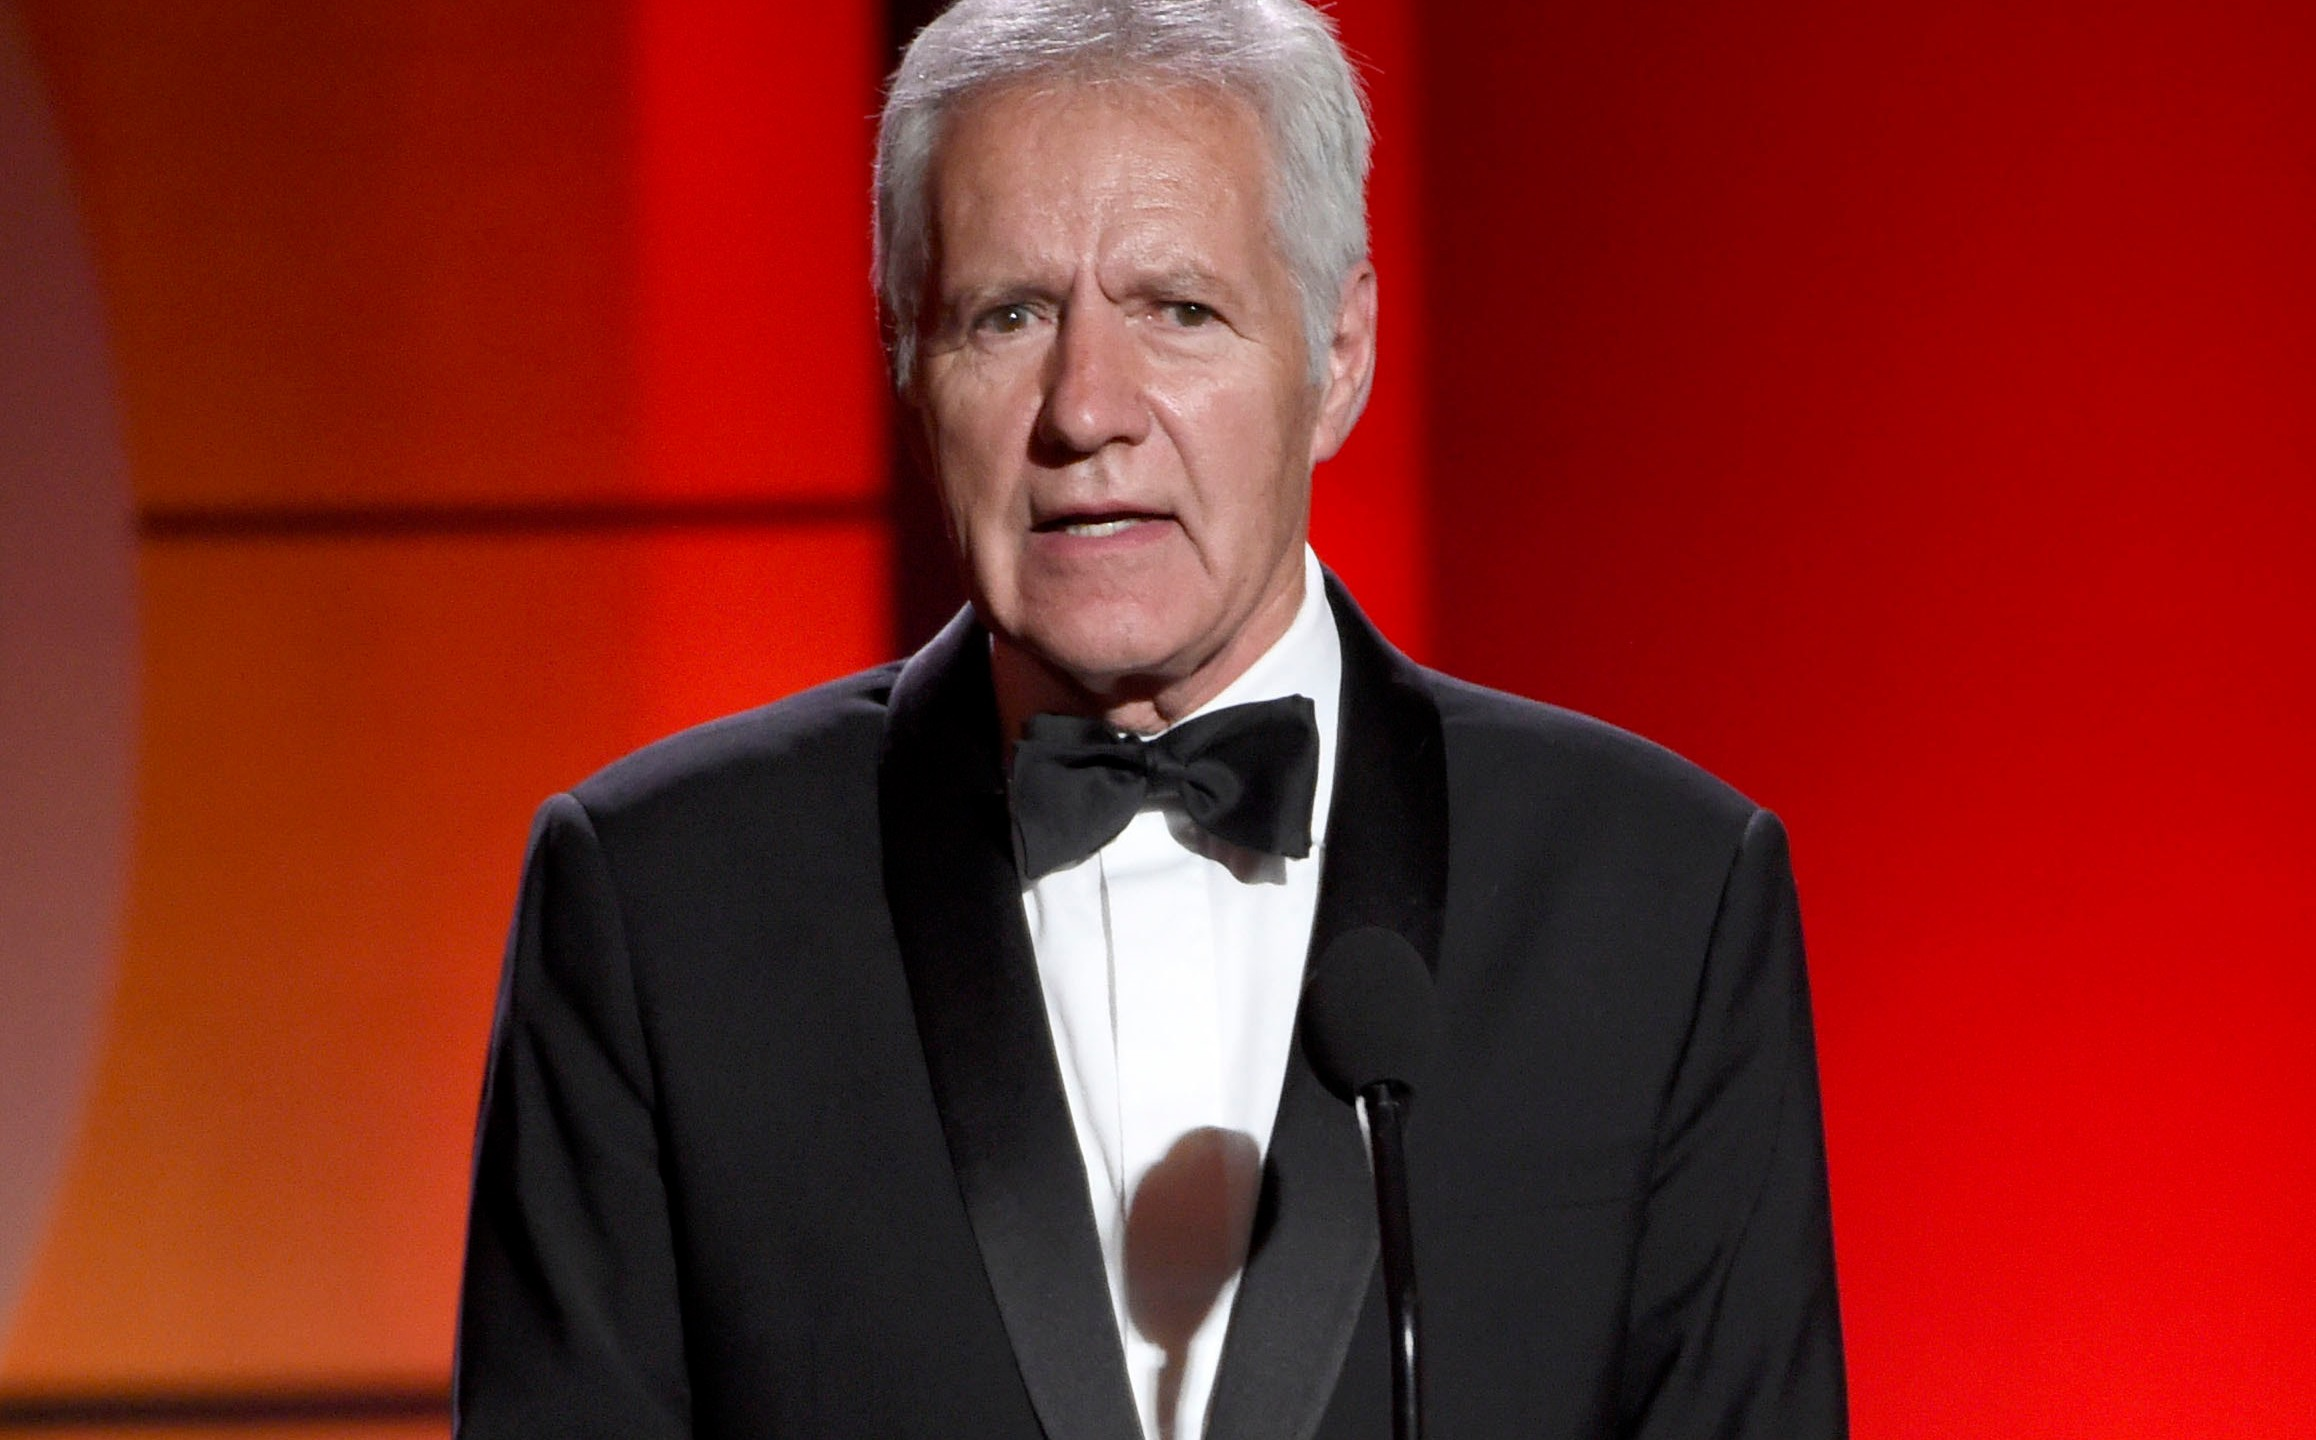 People_Alex_Trebek_03514-159532.jpg50116879